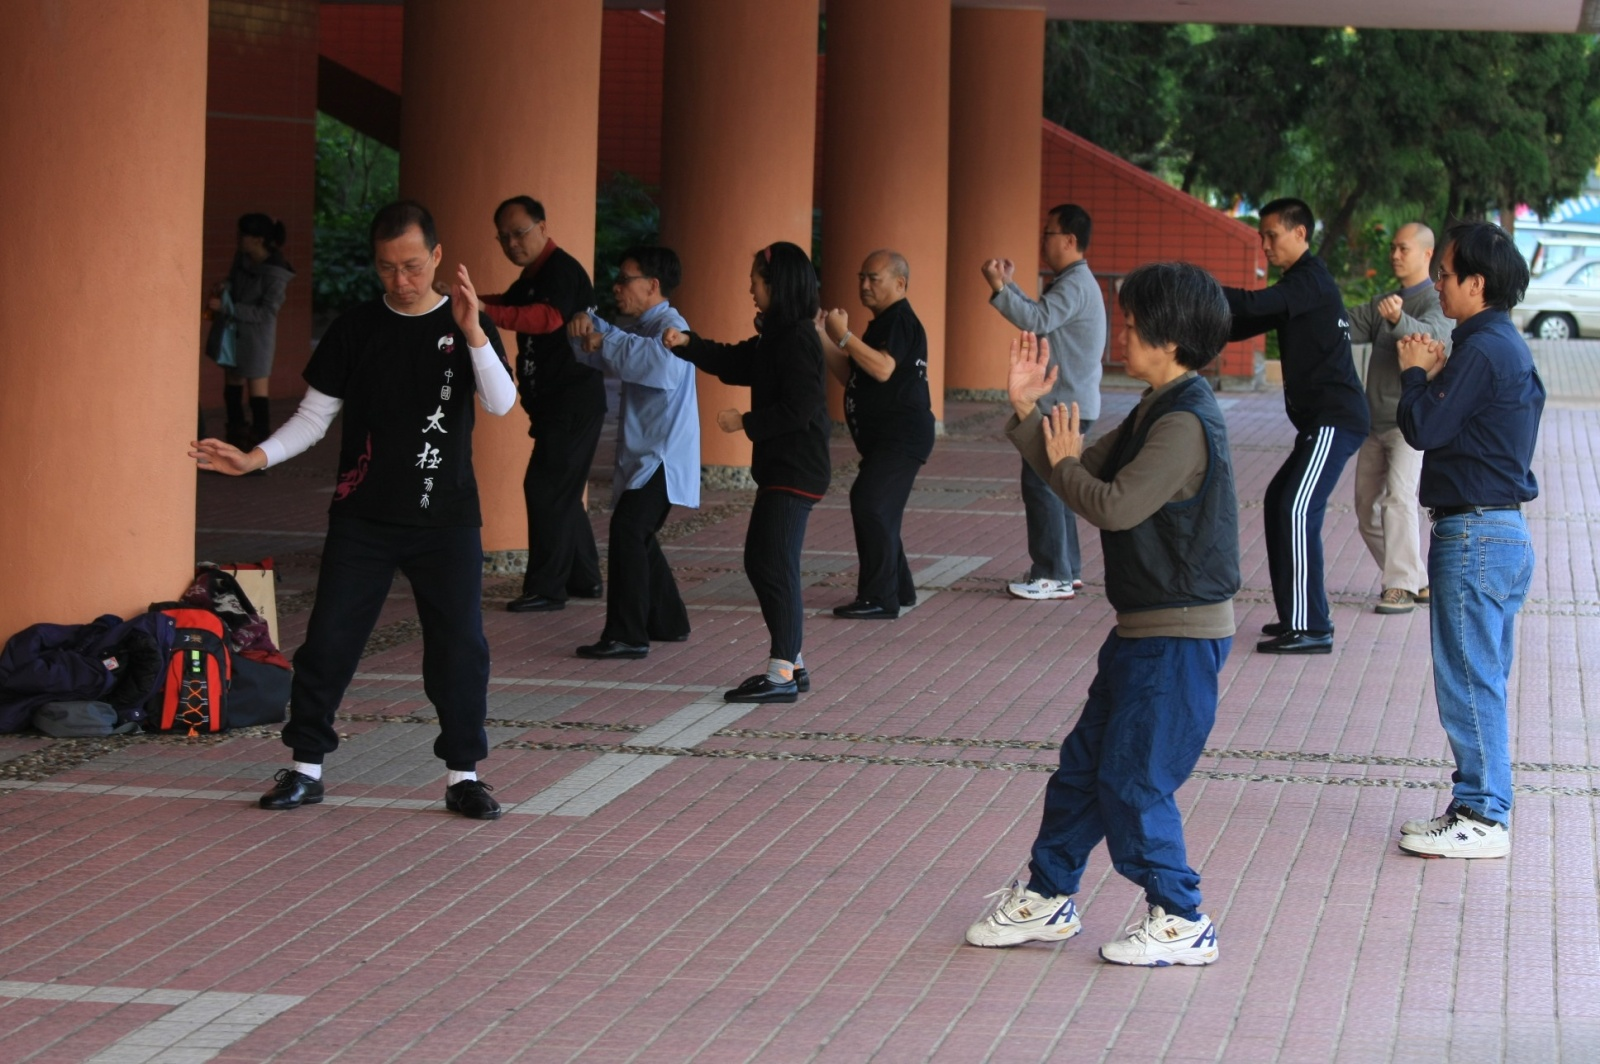 Tai Chi gathering on the street